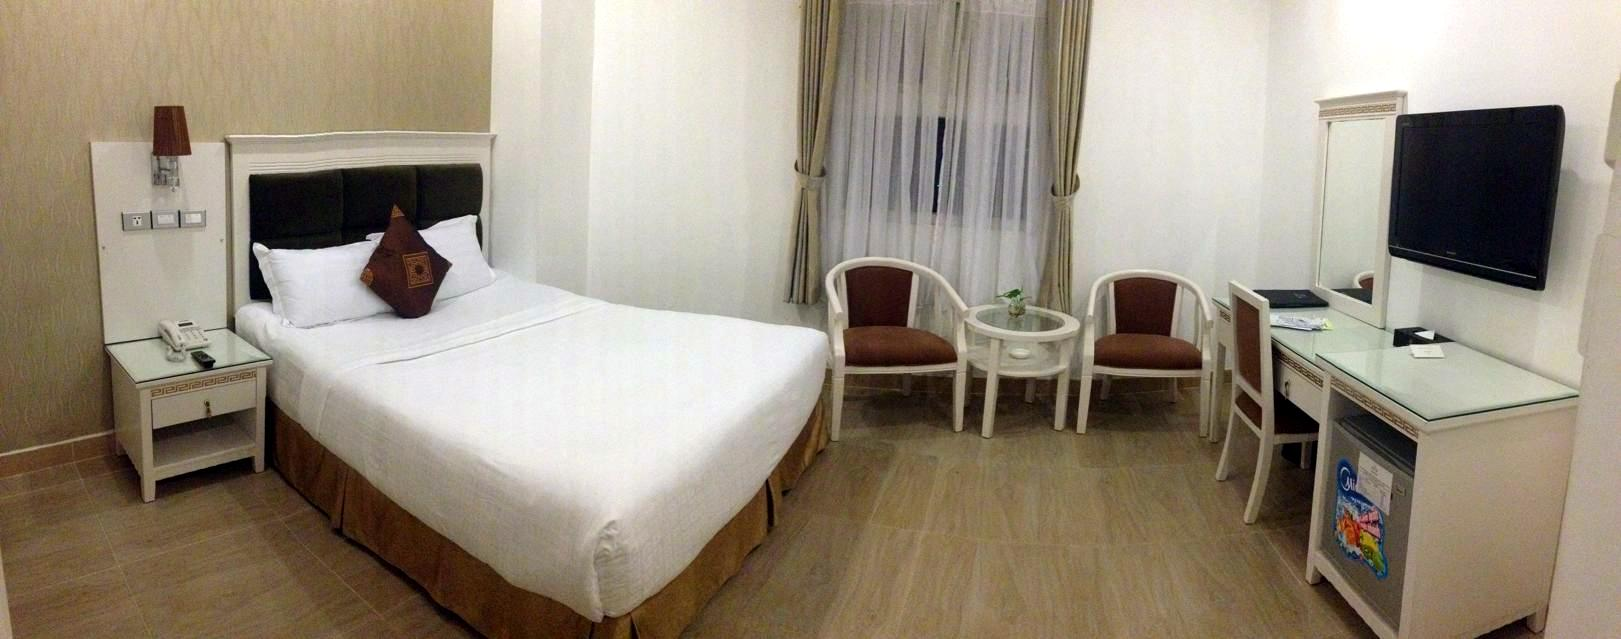 room at Ruby River Hotel, Siagon, Vietnam